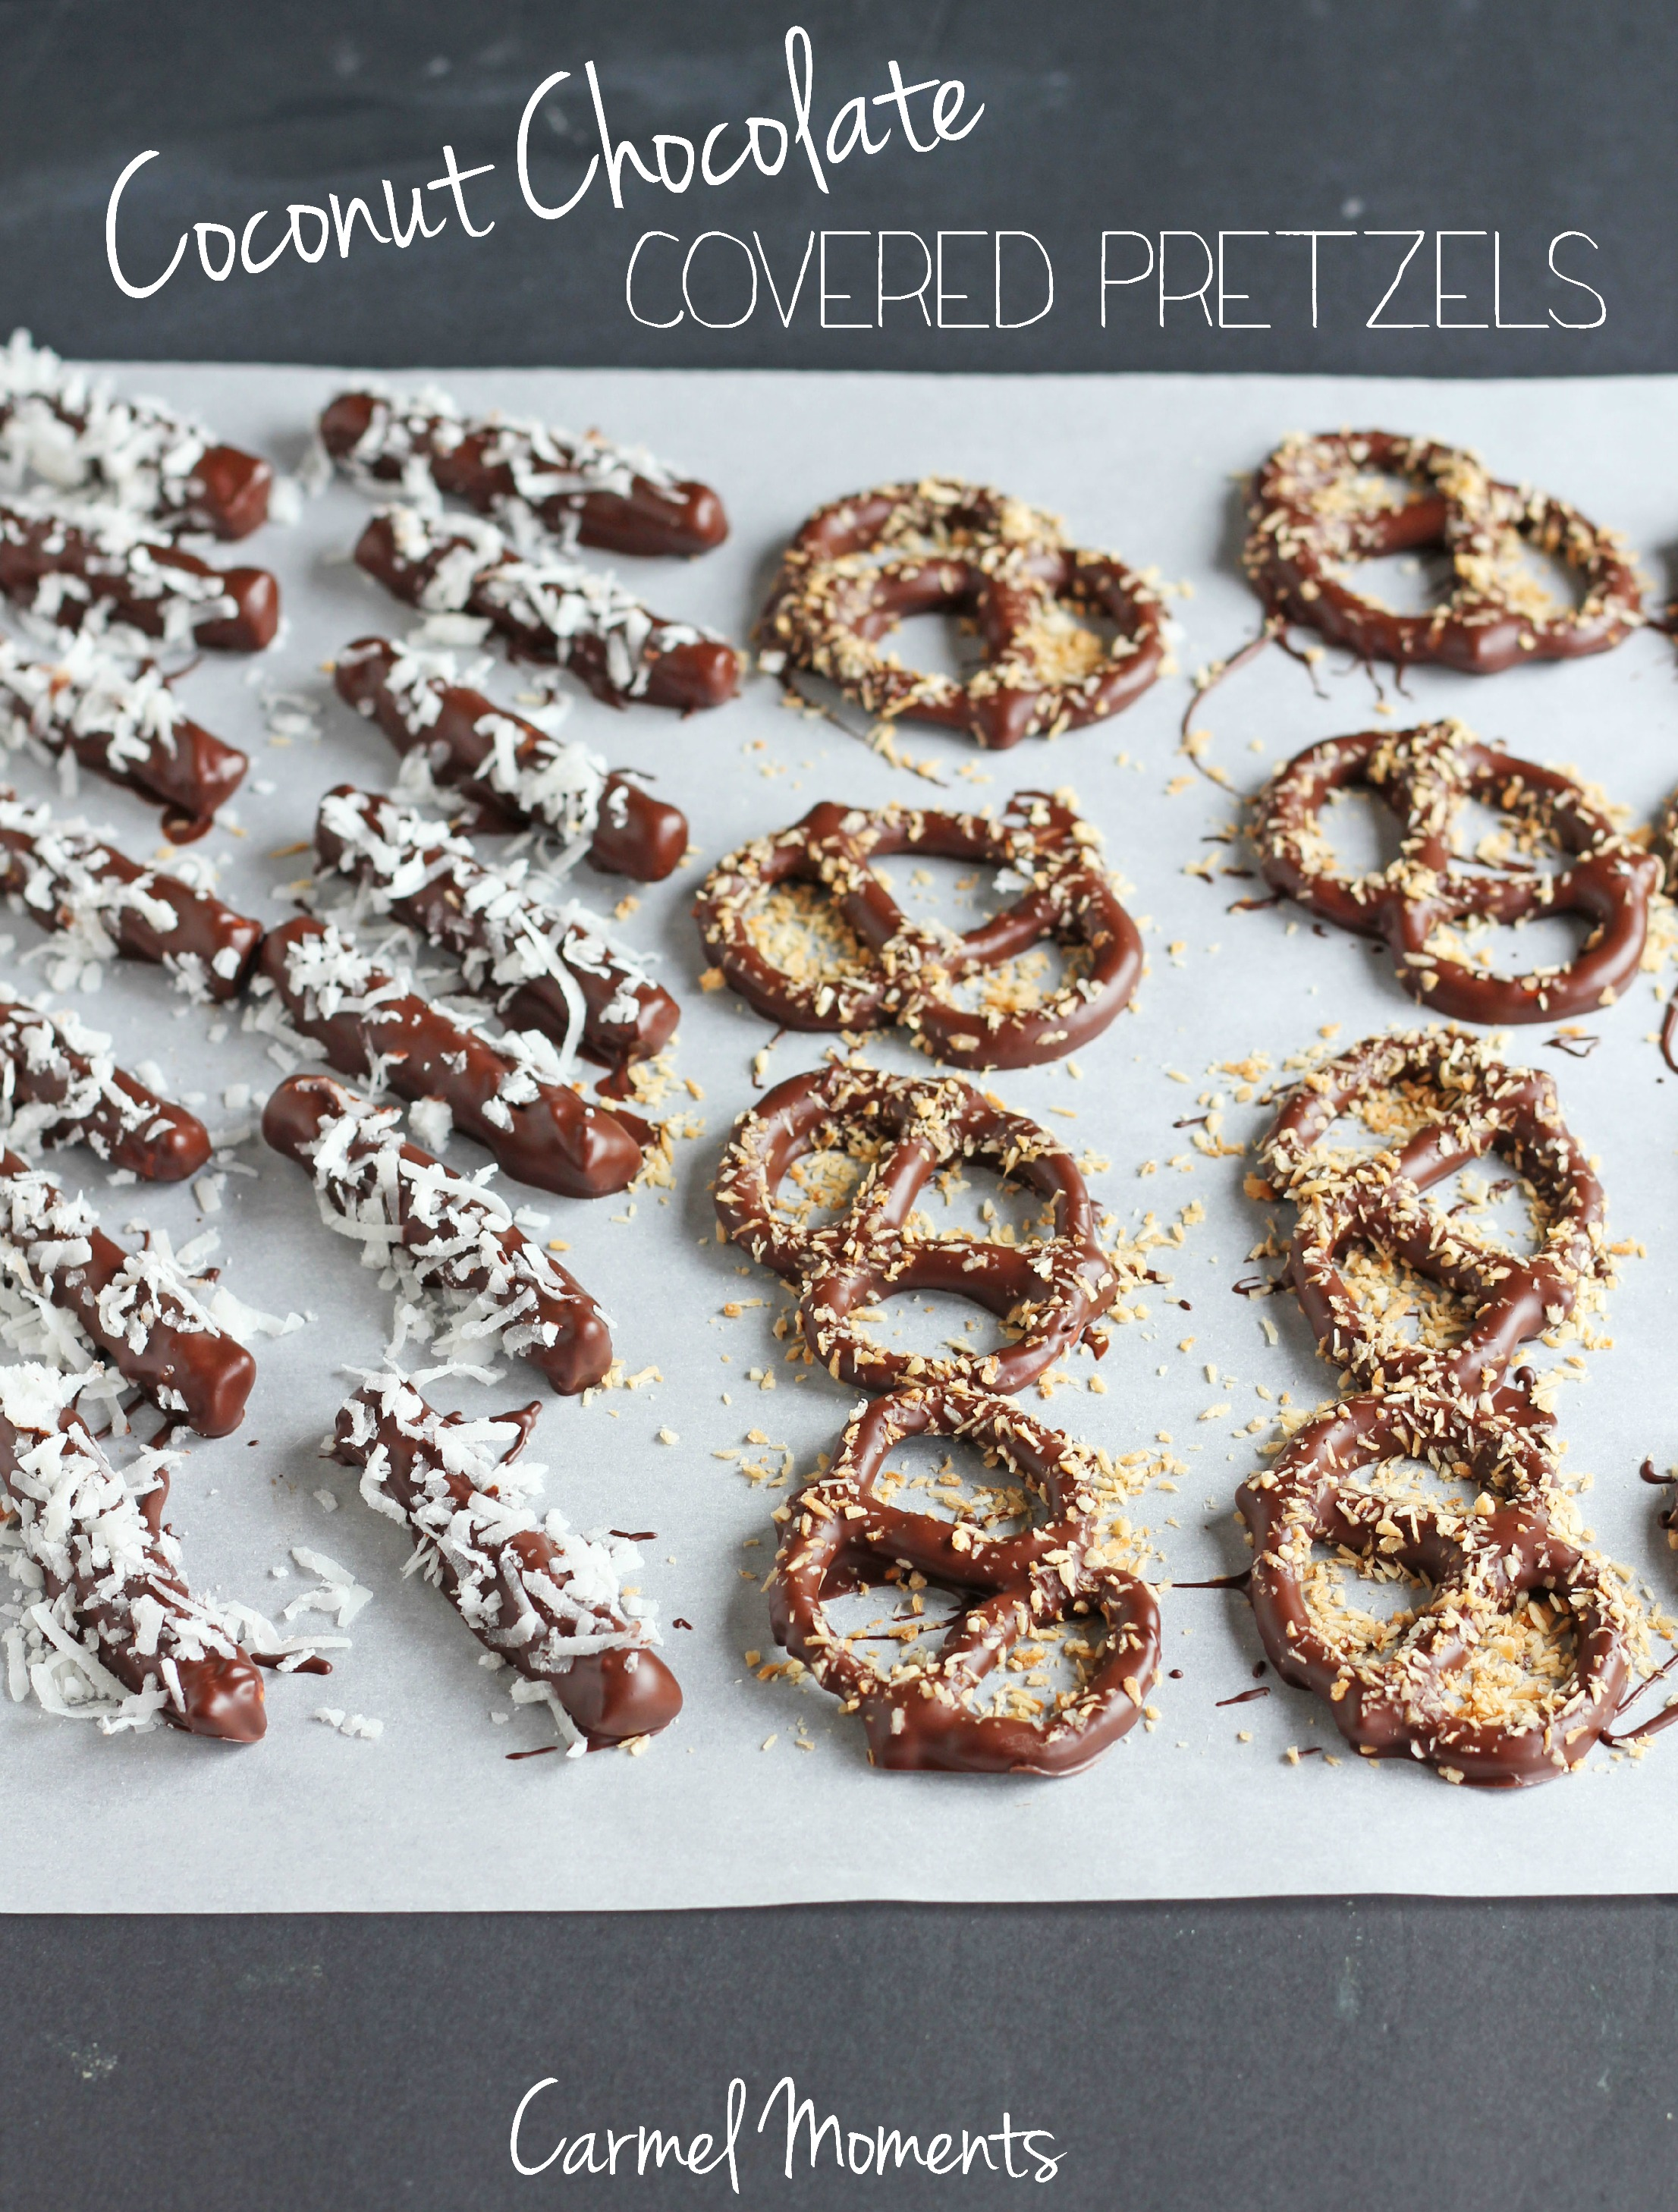 Coconut Chocolate Covered Pretzels